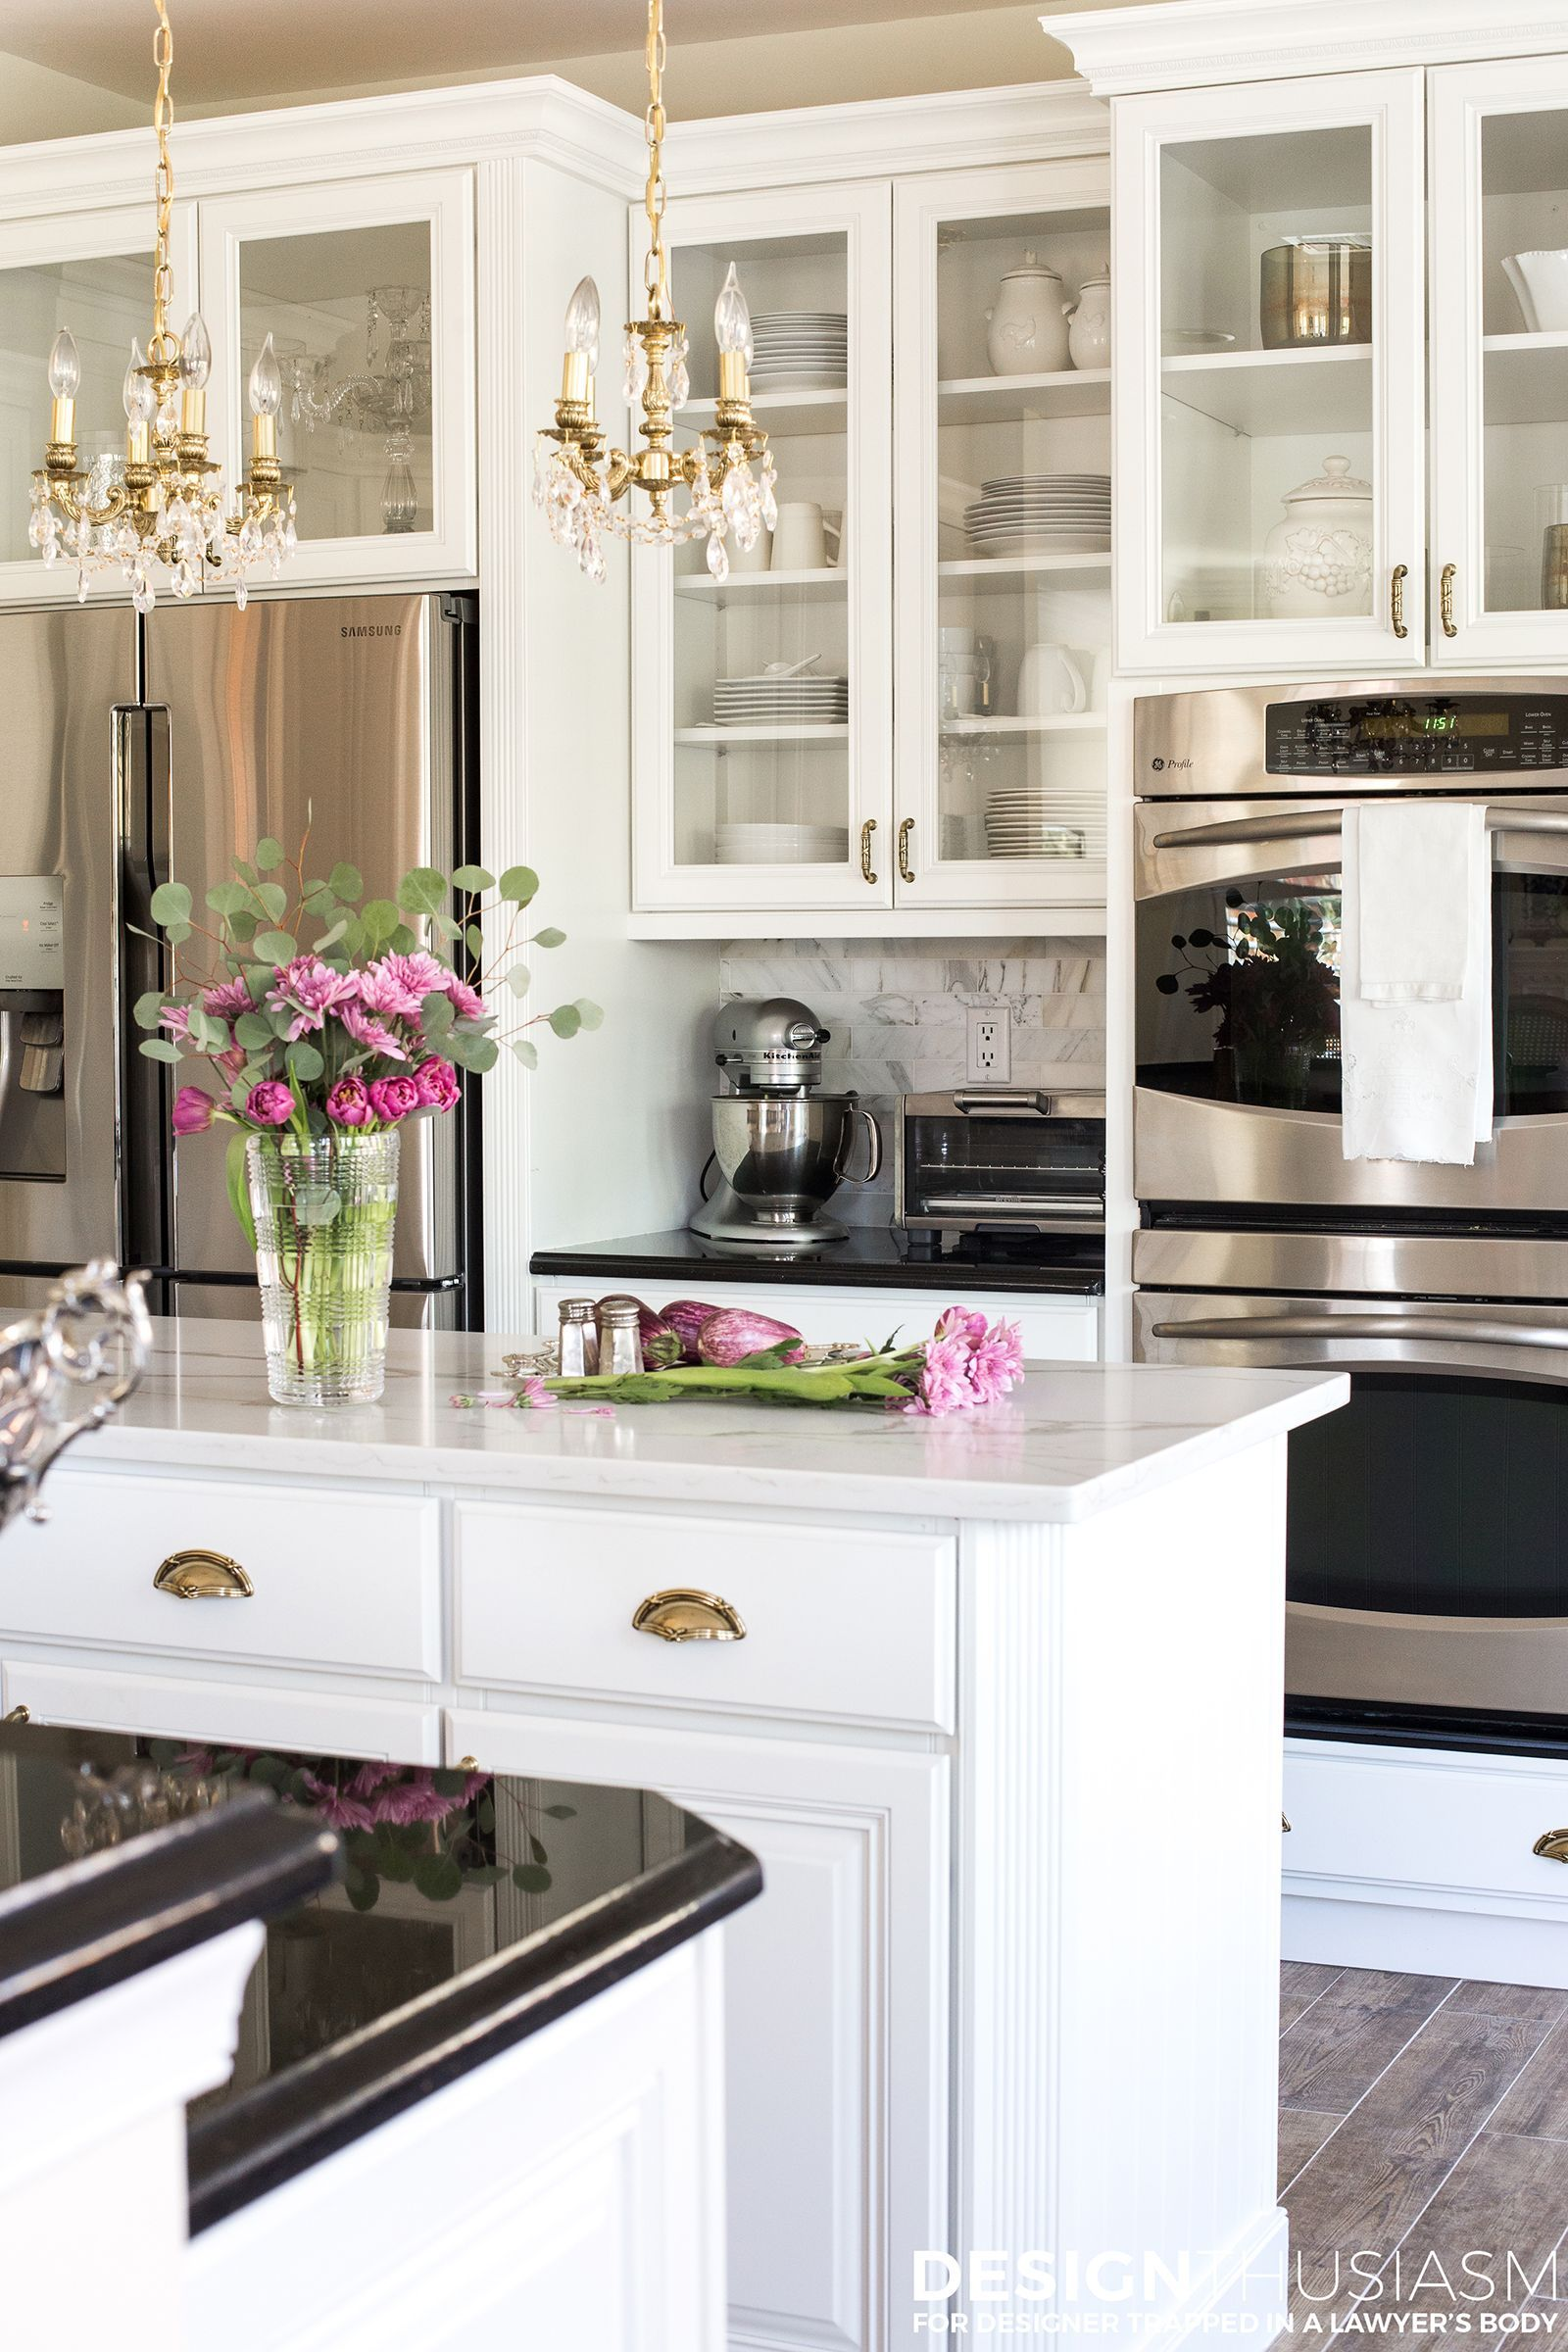 Dramatic Kitchen Makeover Without Removing Cabinets Dream Kitchen Remodel Ideas On A Budget K Budget Kitchen Remodel Kitchen On A Budget Kitchen Renovation